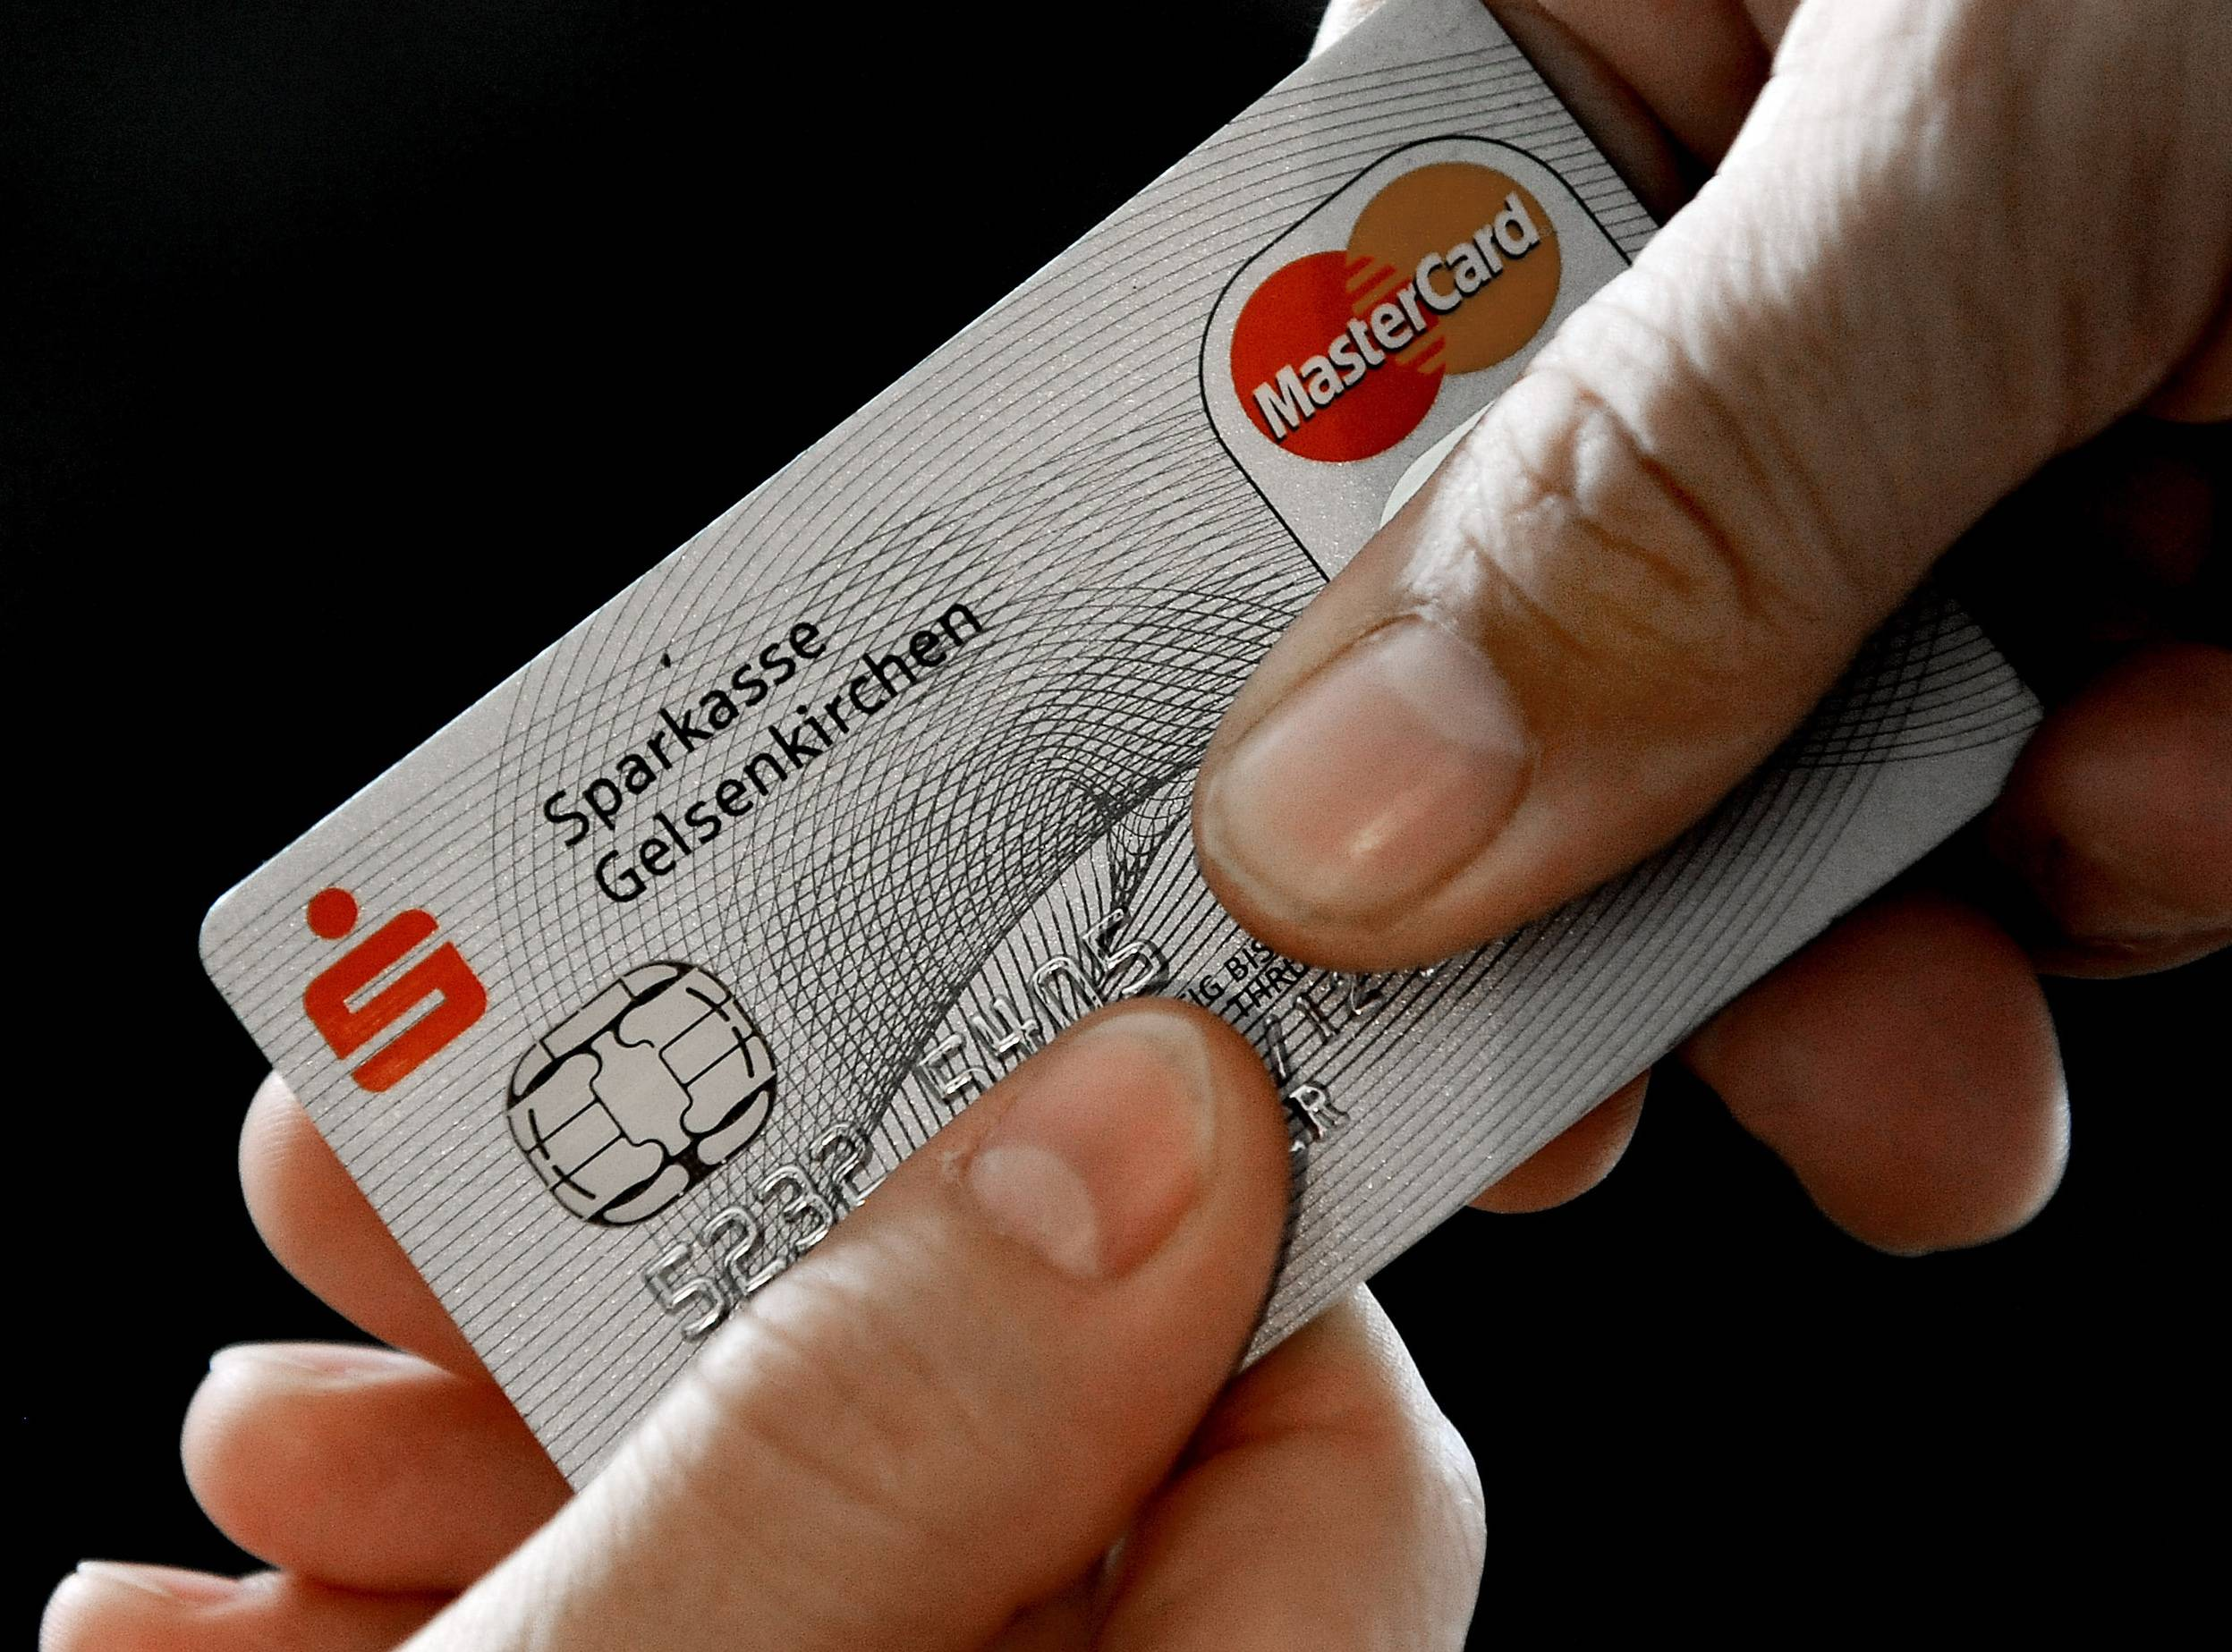 A Mastercard chip-based credit card in Gelsenkirchen, Germany.